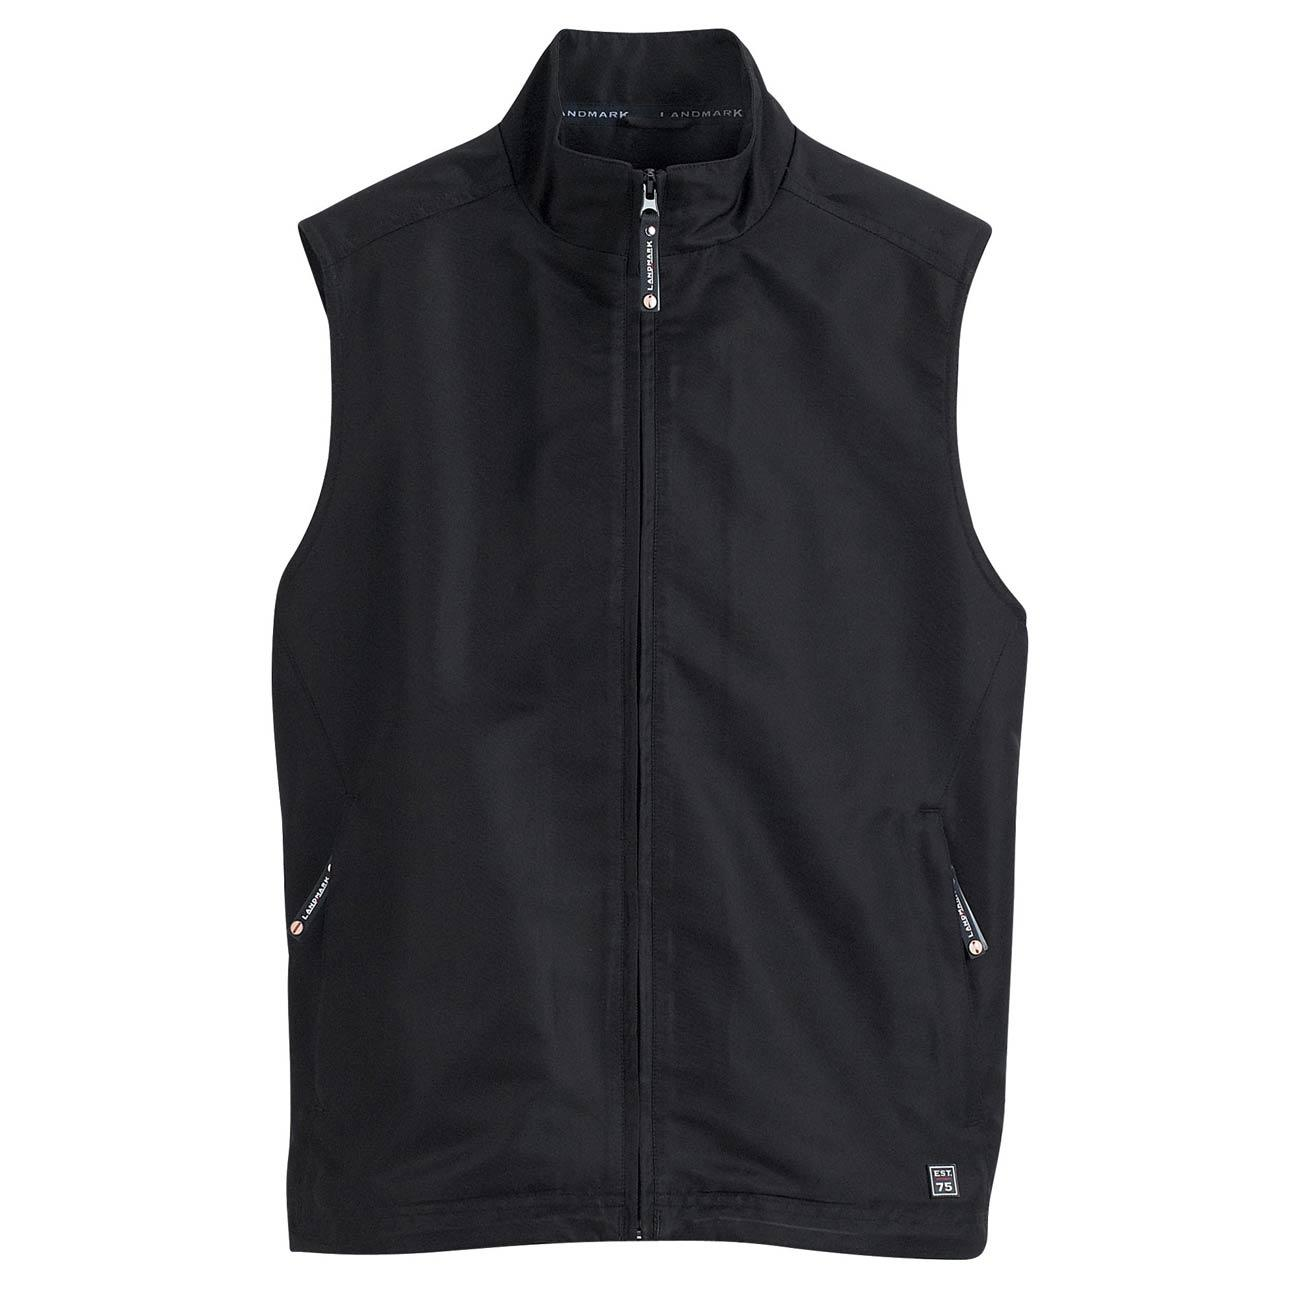 LANDMARK LADIES PIVOT VEST